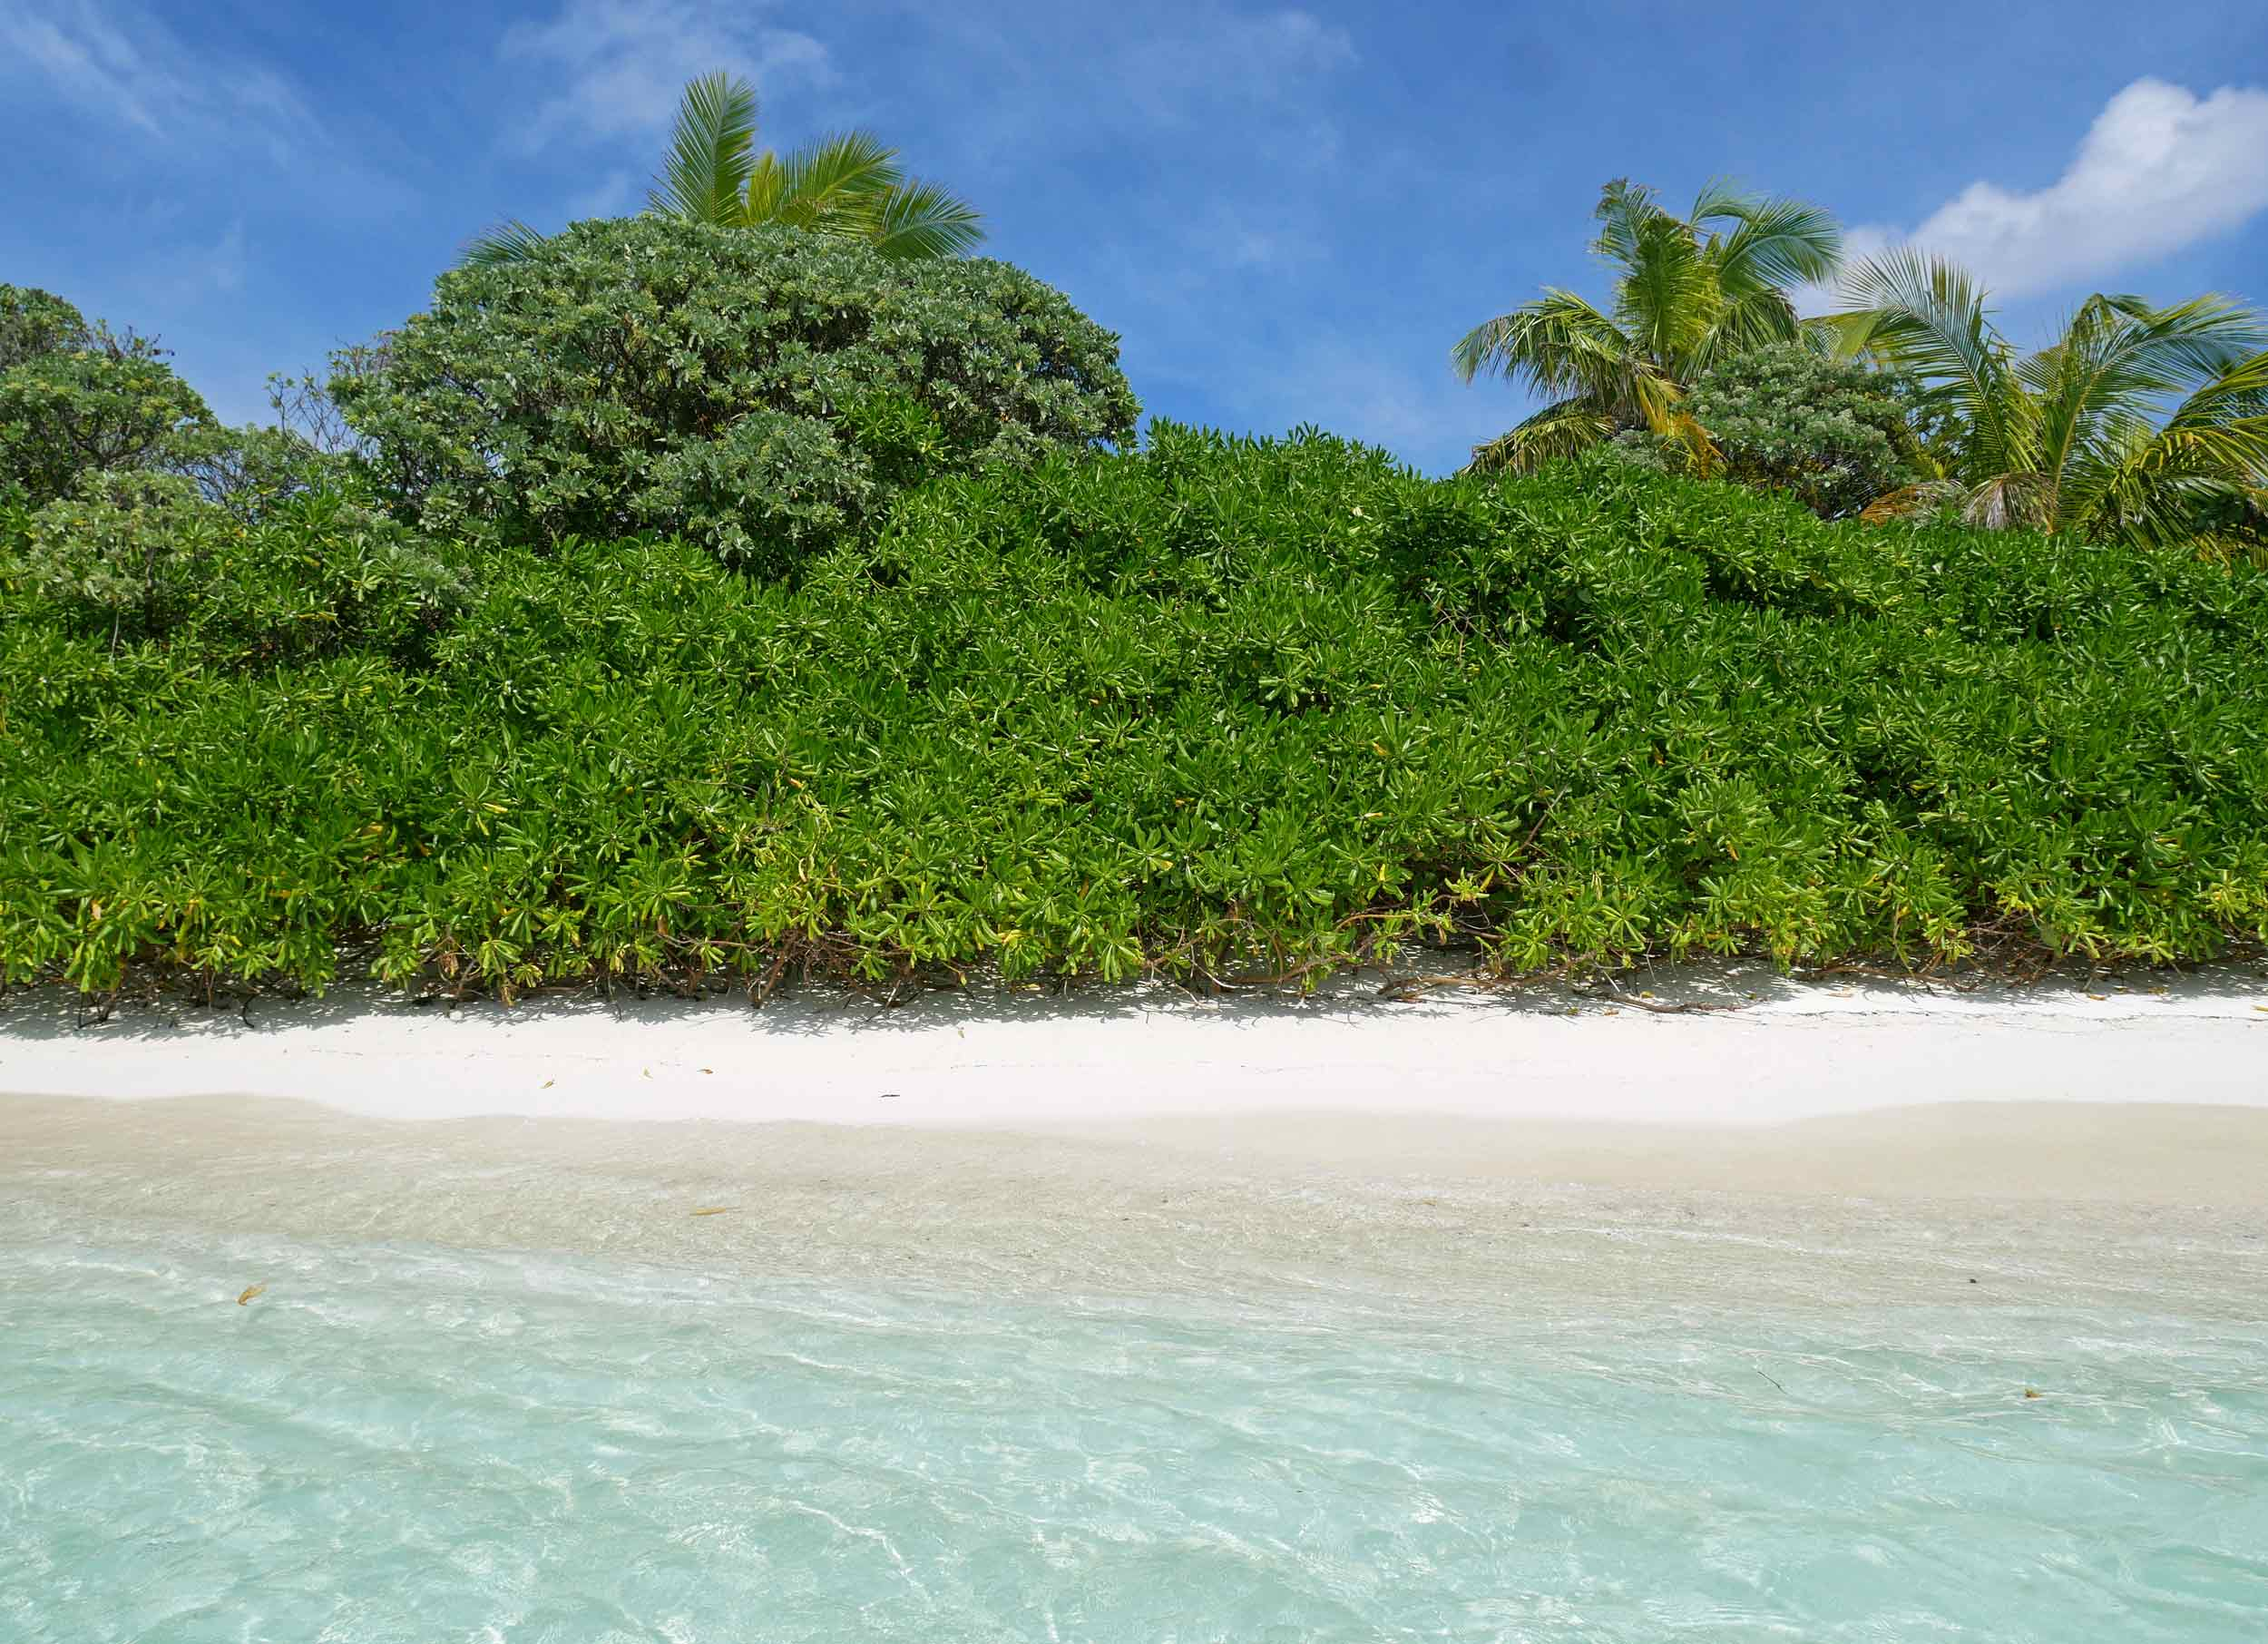 The entire island nation of the Maldives is on average just about four feet above sea level.